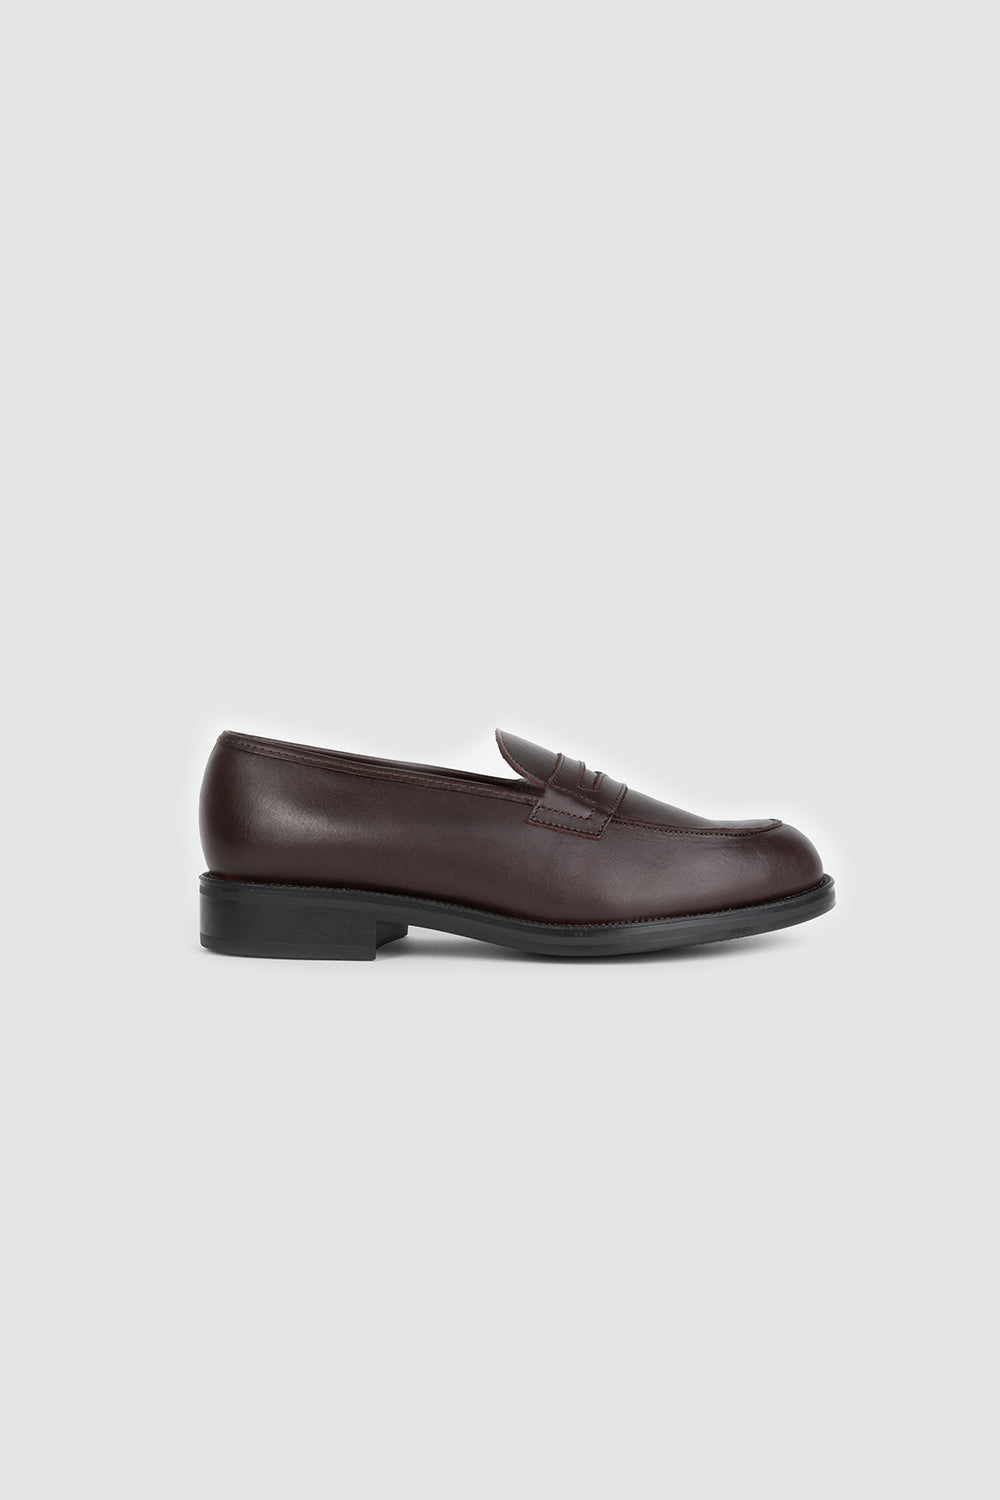 kleman dalior loafers bordeaux